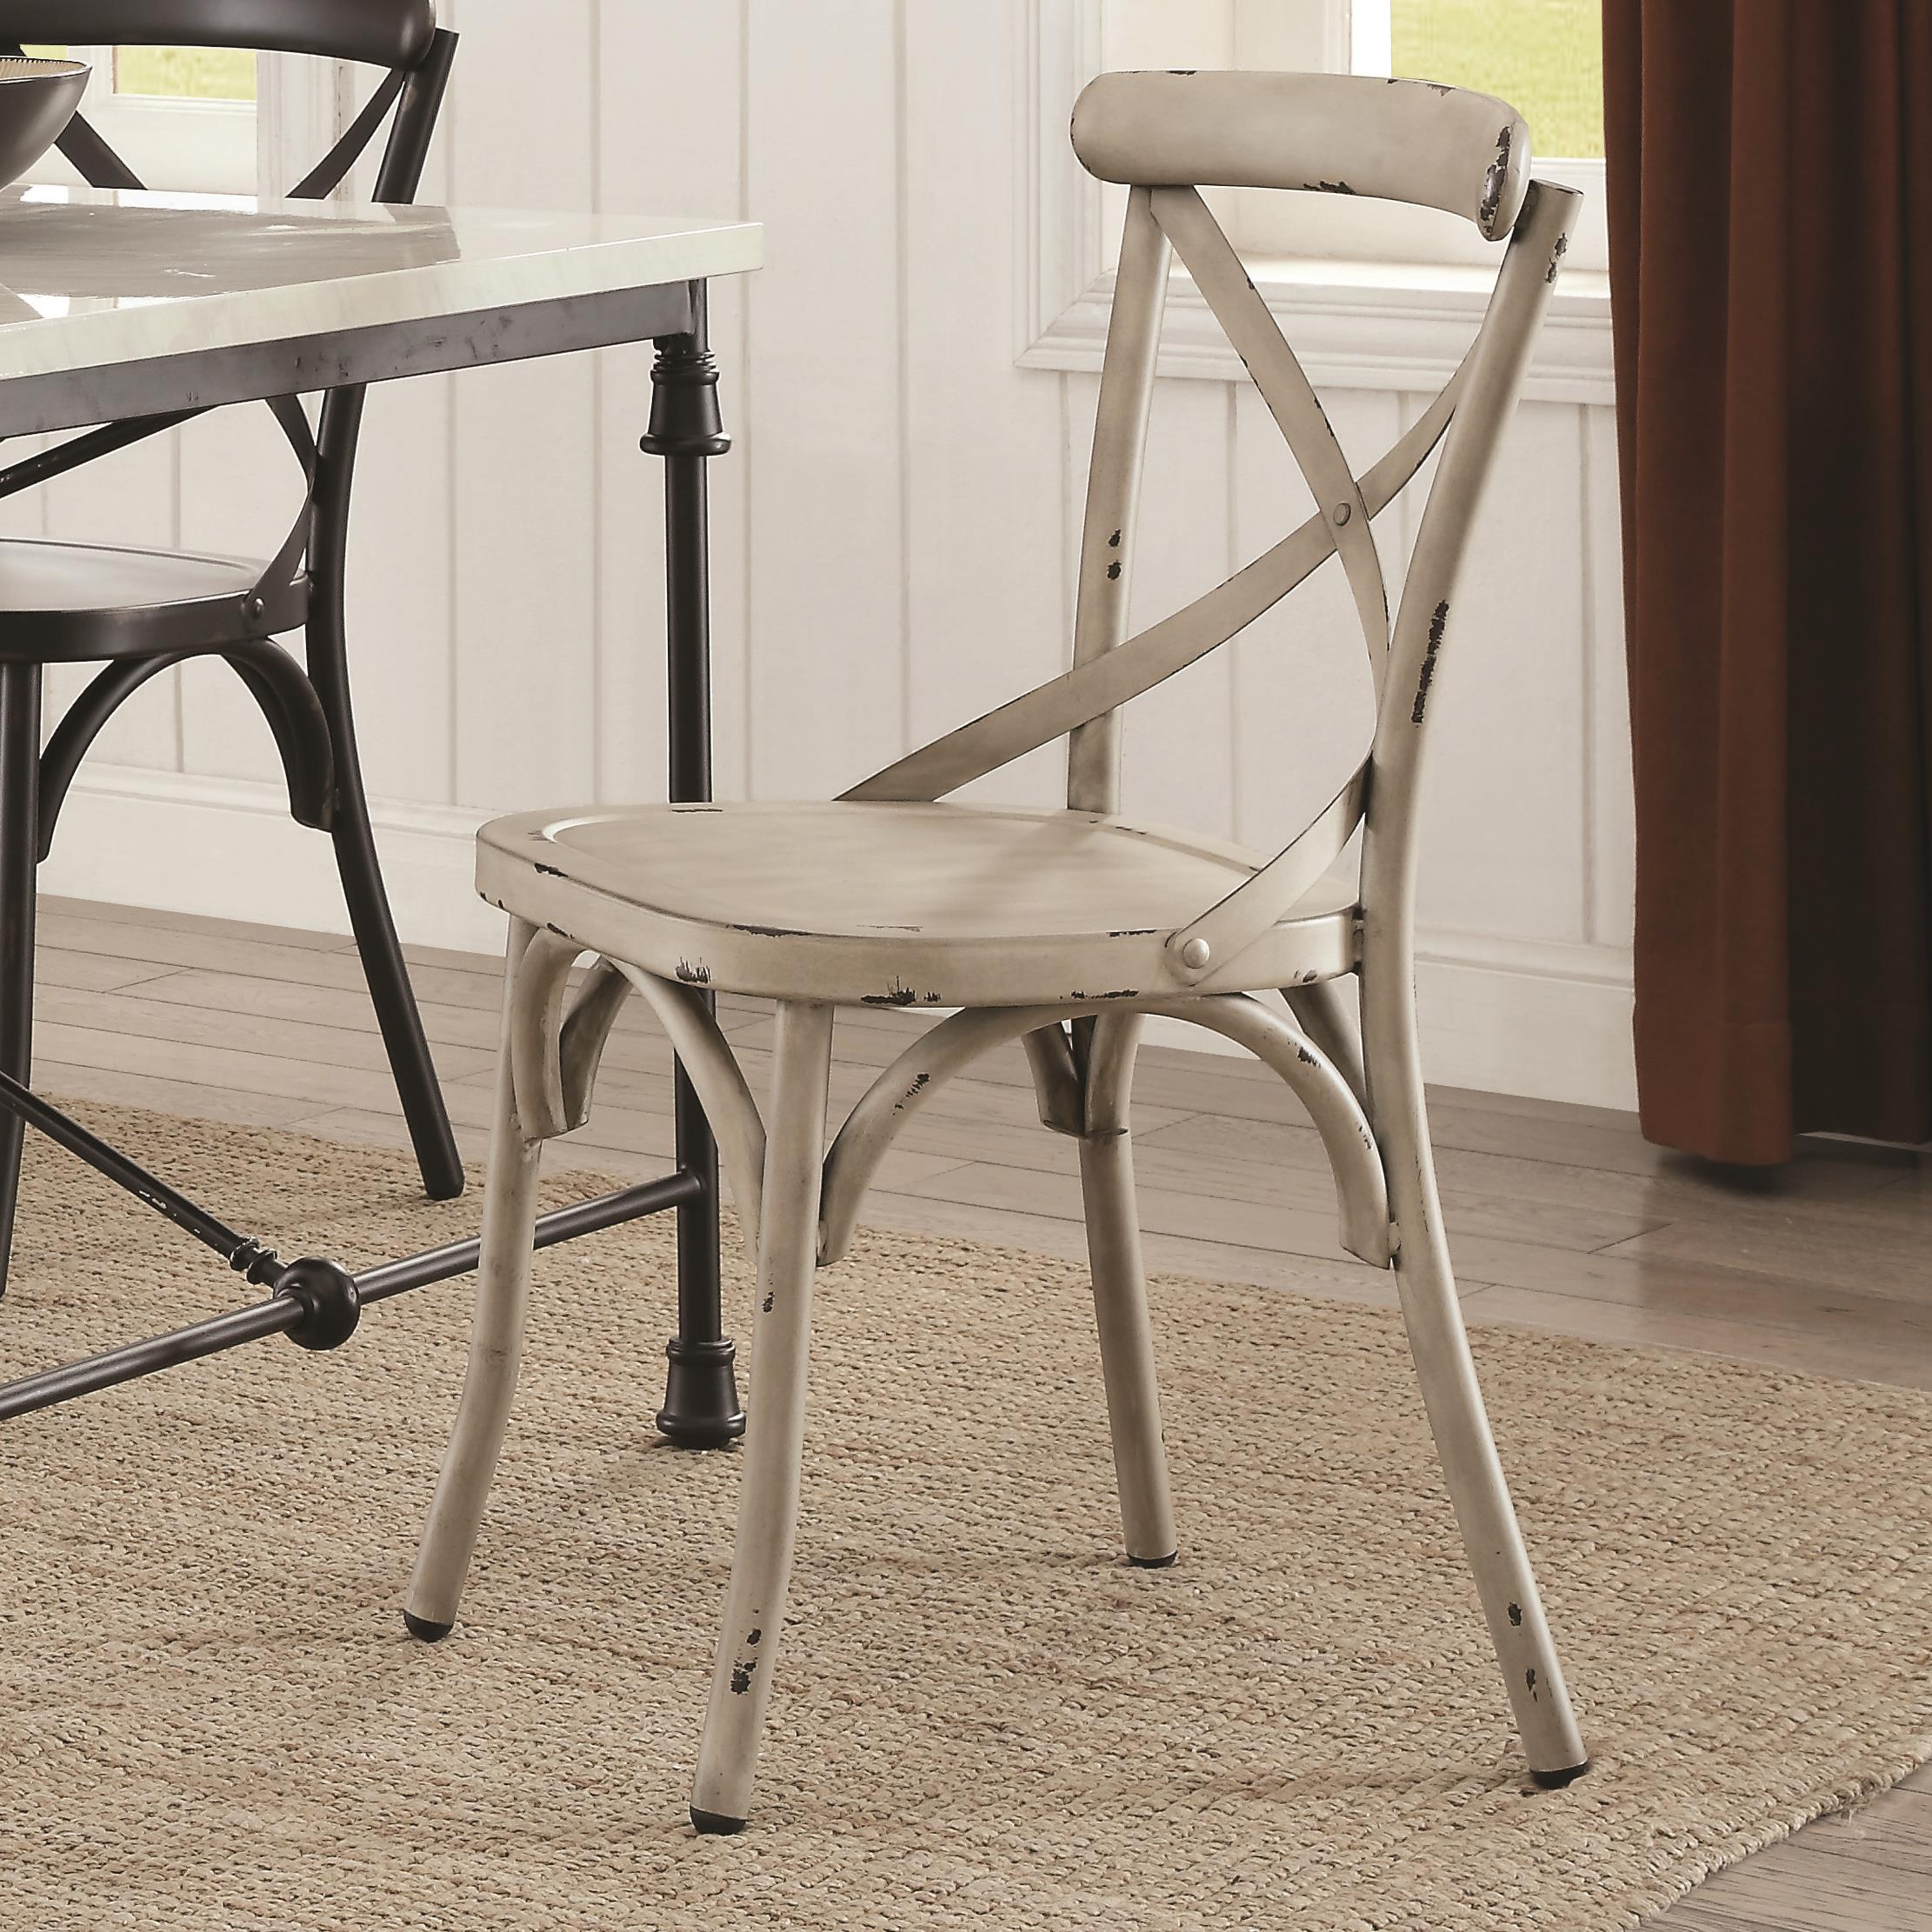 Coaster Nagel Dining Chair White - Item Number: 105315